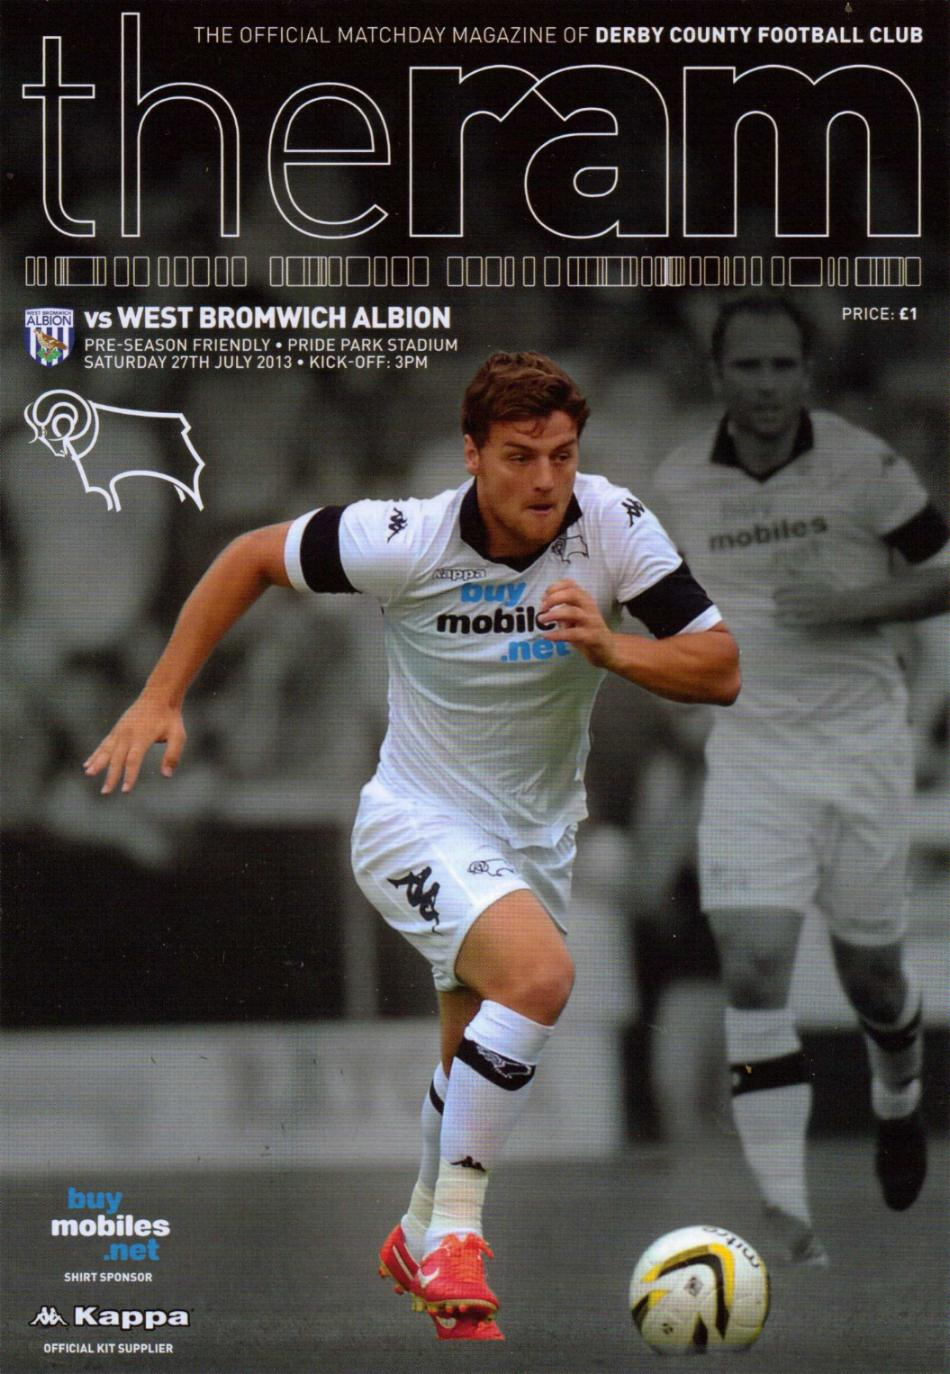 DERBY COUNTY v WEST BROM 2013/14 (FRIENDLY)